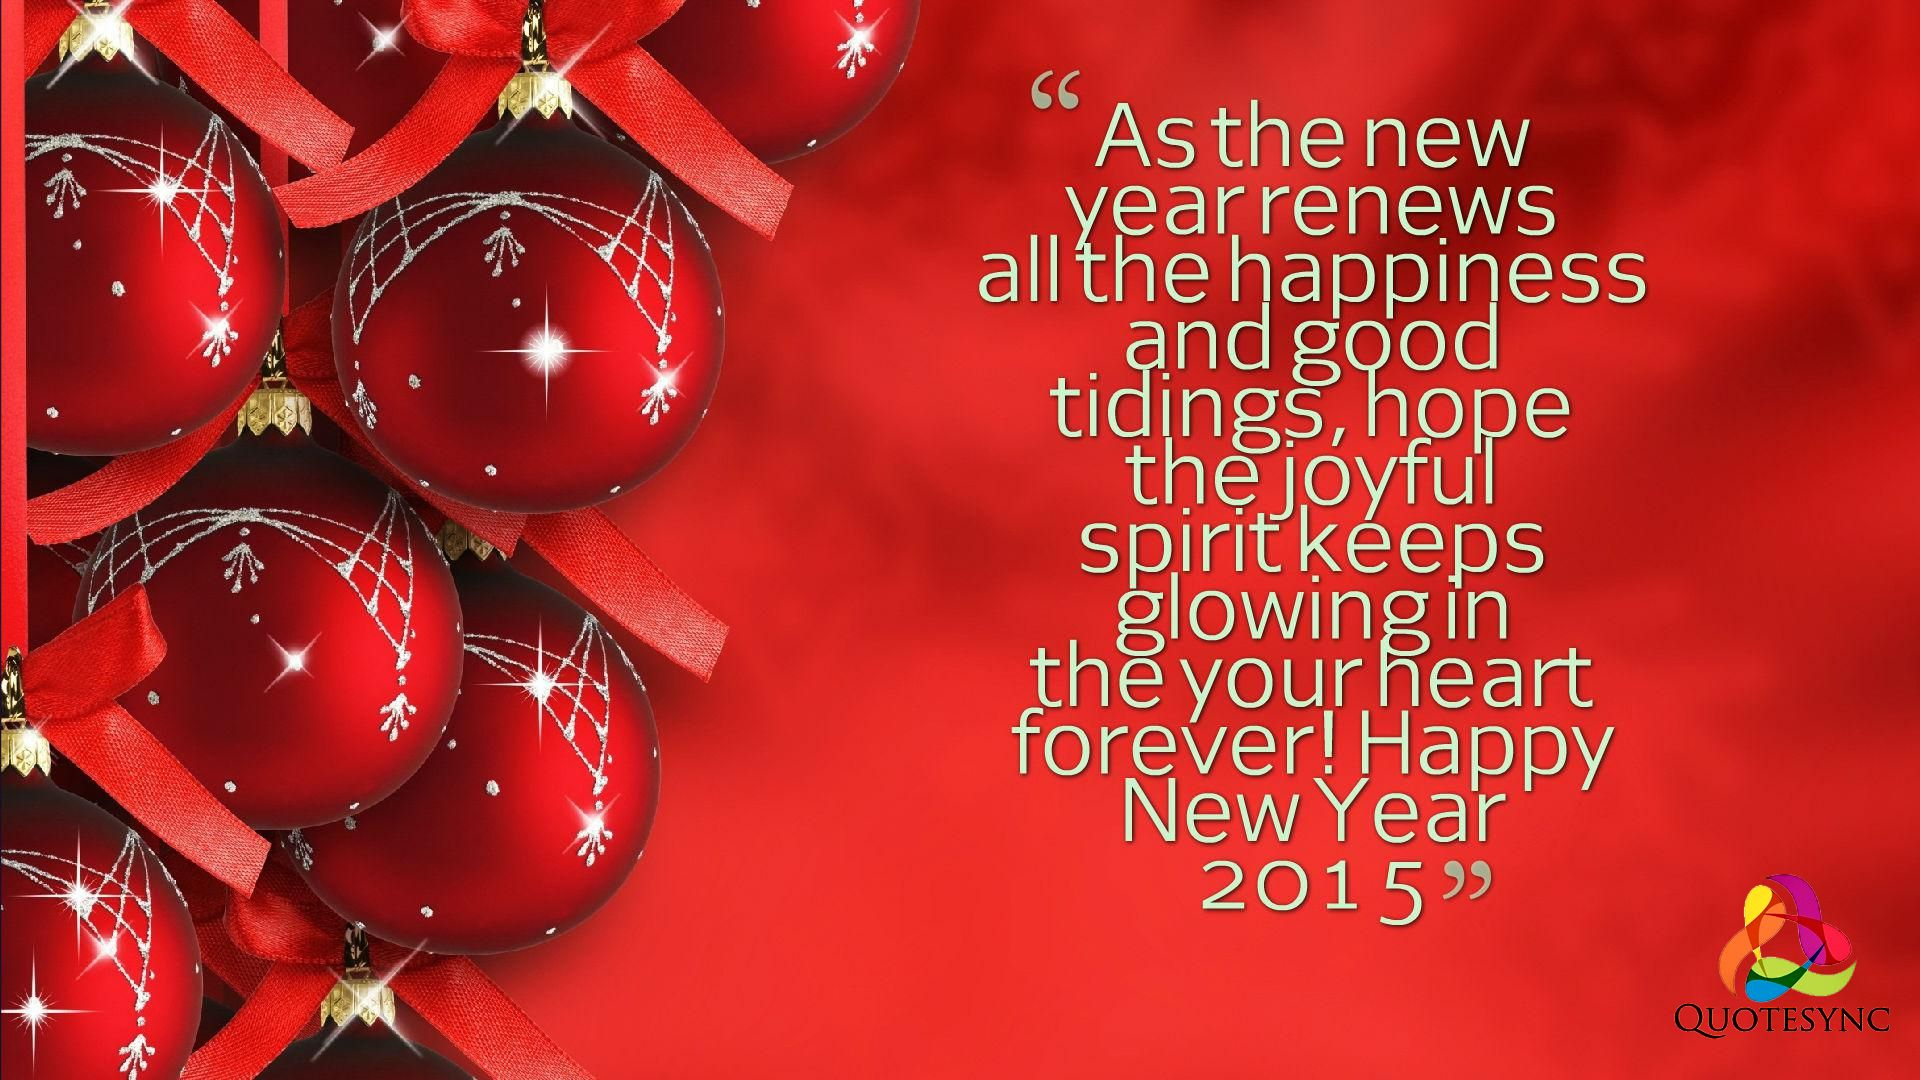 As The New Year Renews All The Happiness And Good Tidings Hope The Joyful Spirit Keeps Glow Happy New Year Quotes Quotes About New Year New Year Quotes Images